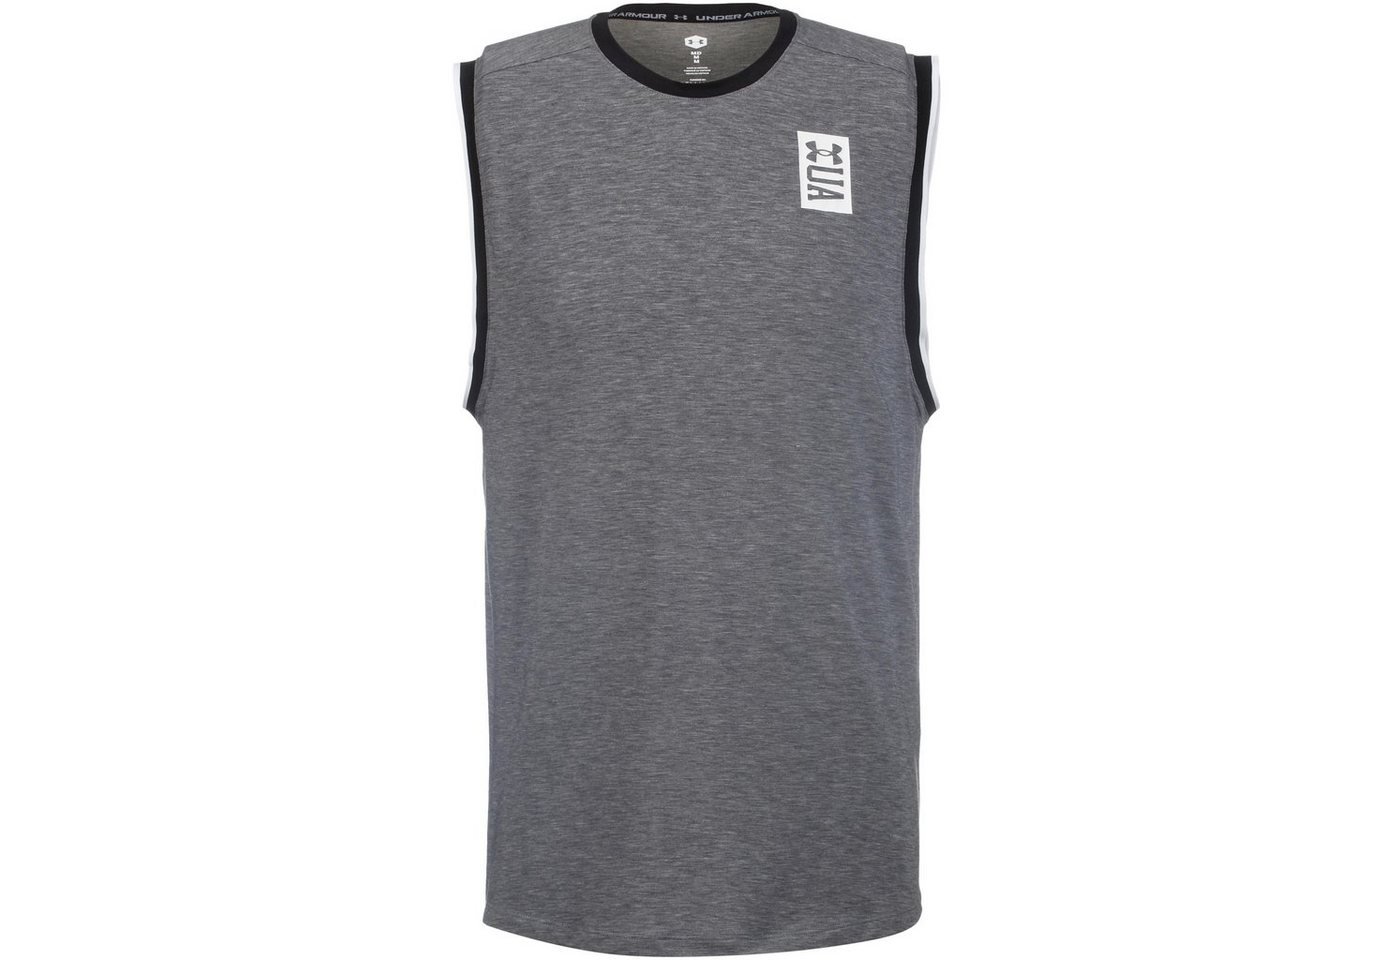 under armour - ® Tanktop »Recover«